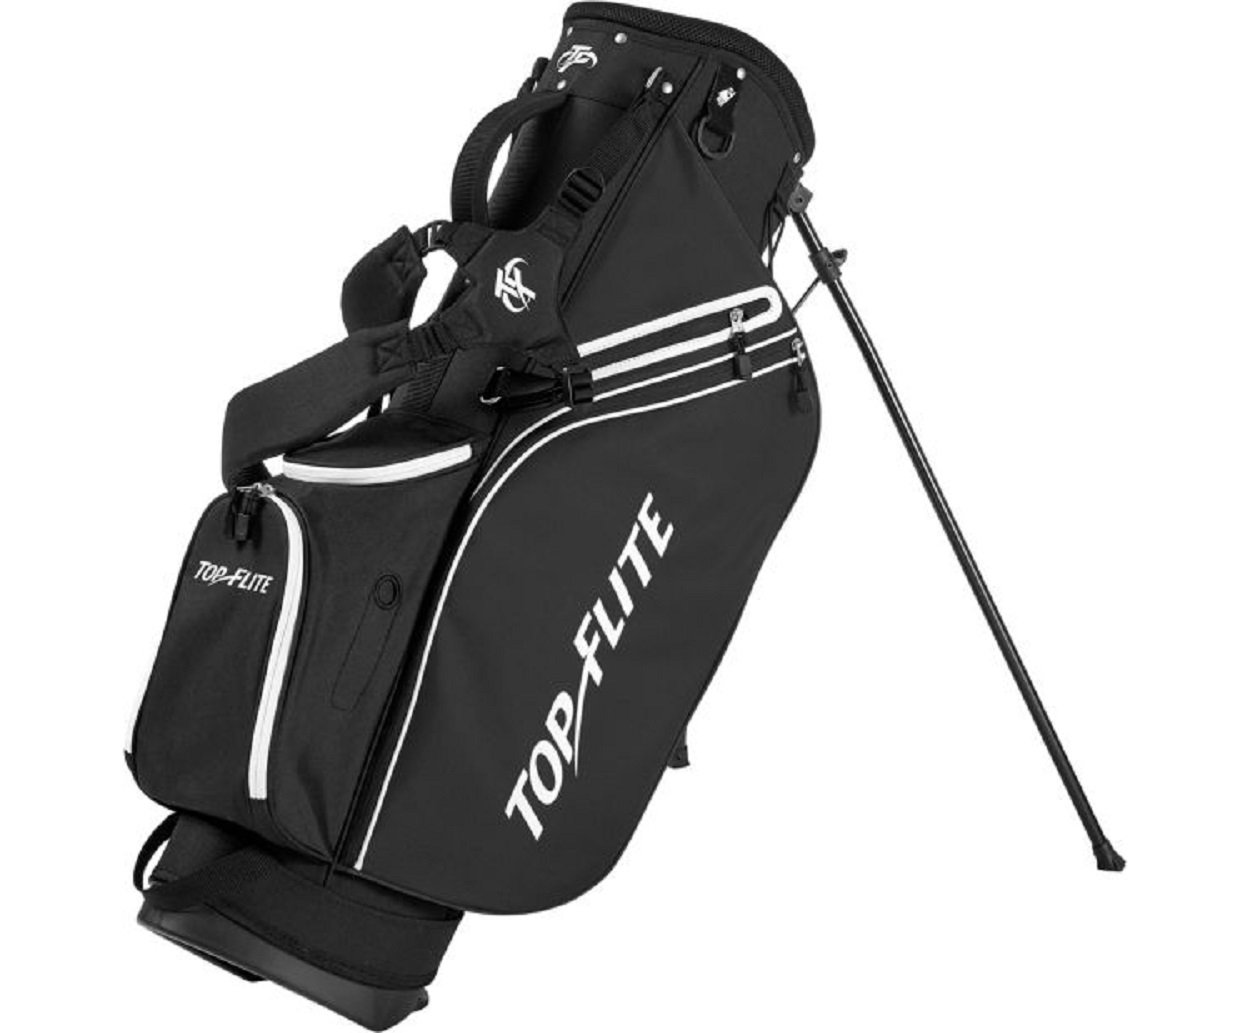 Top Flite 2018 Golf Stand Bag Mens Lightweight 8-Way Top - Black